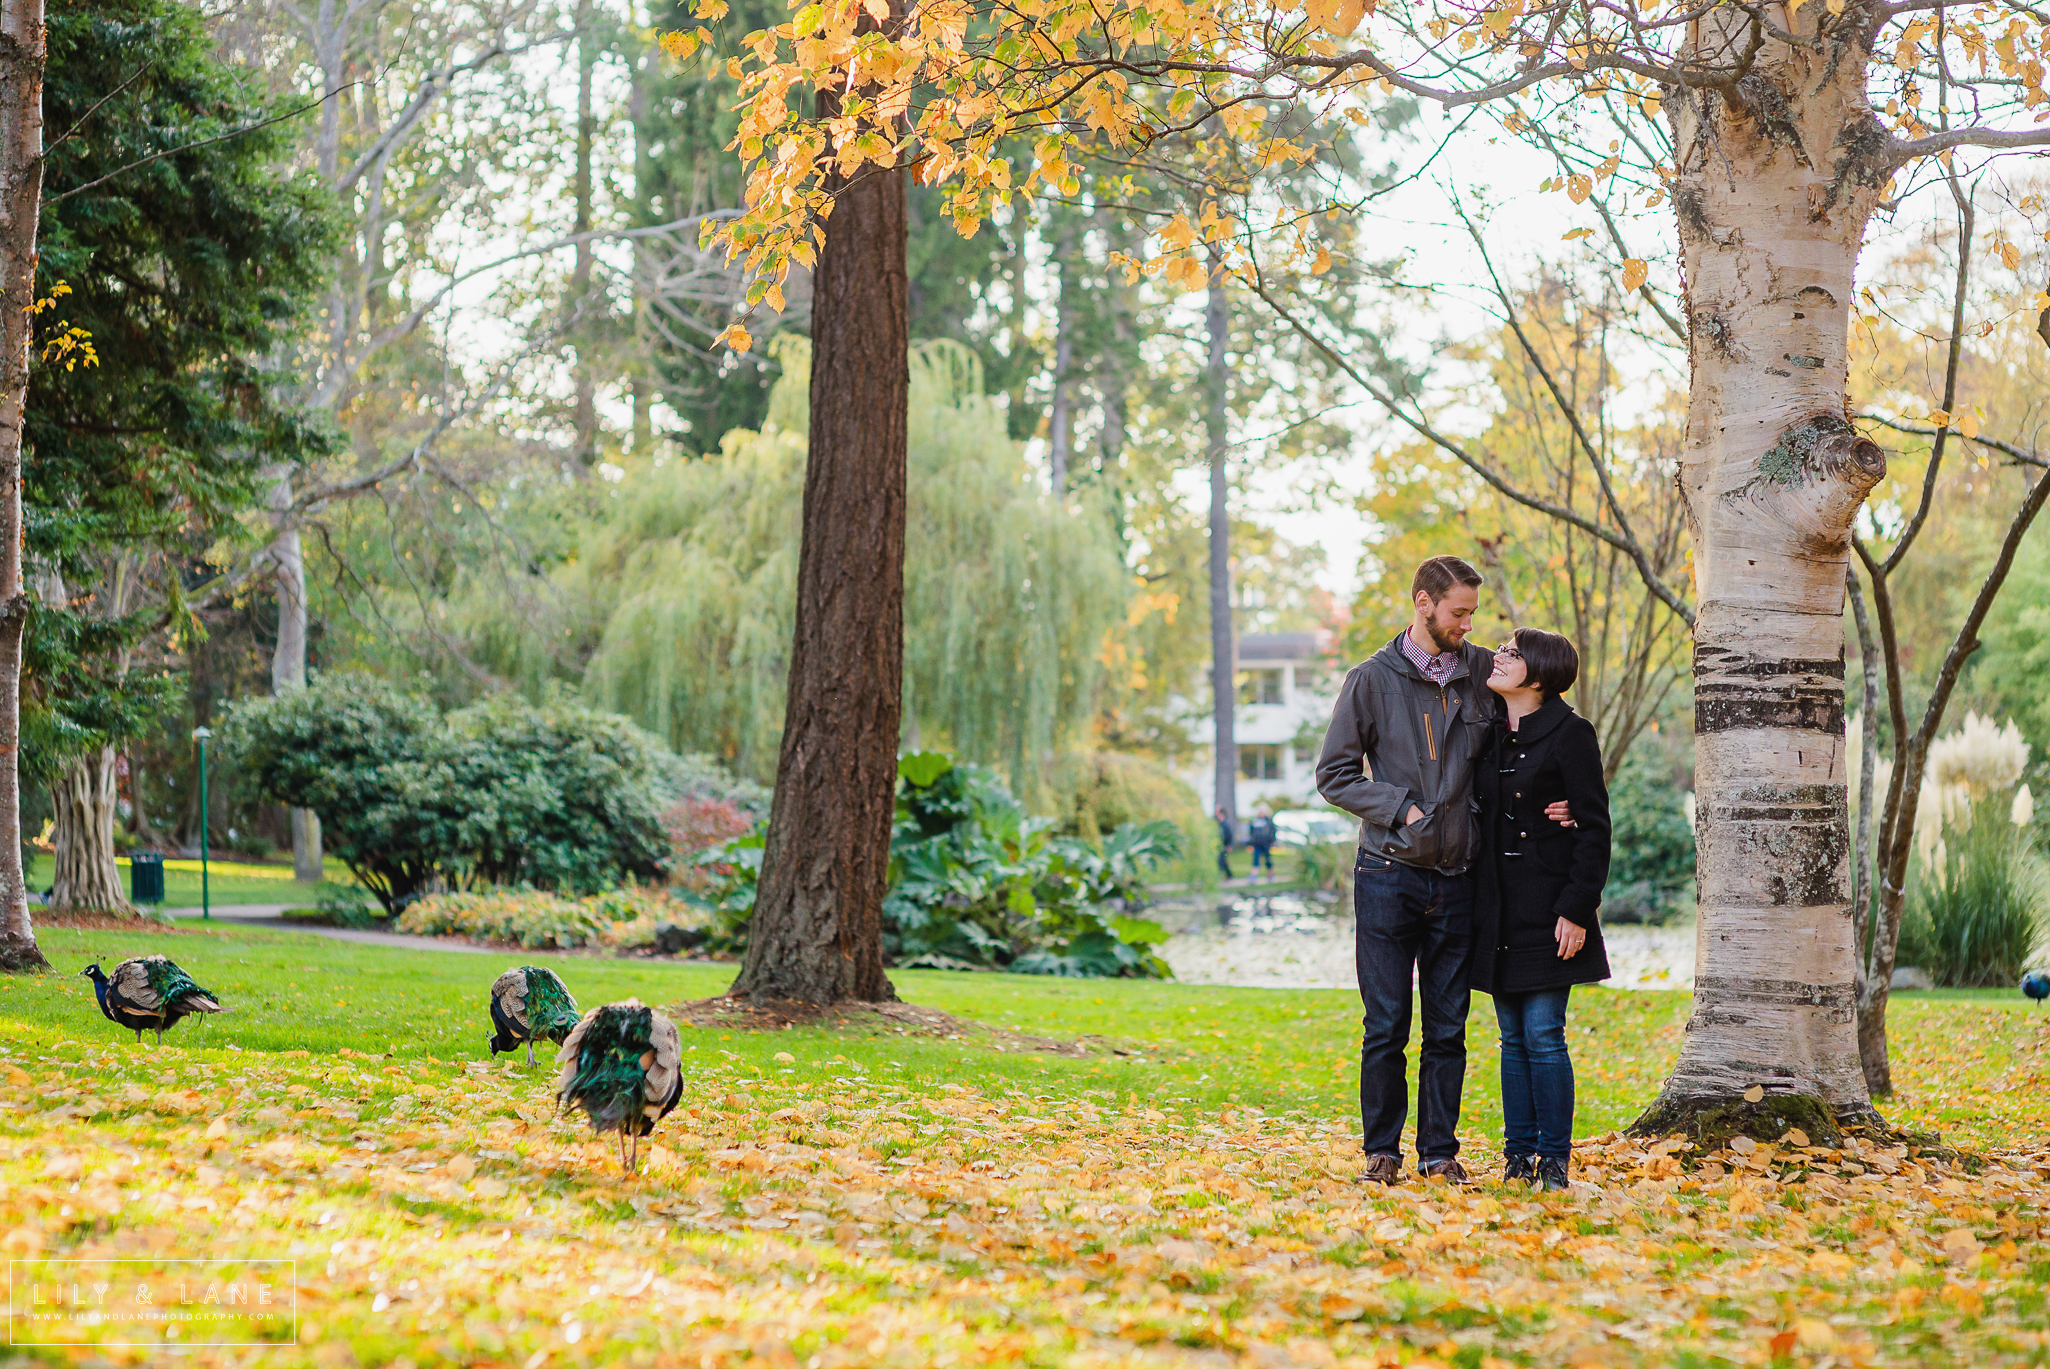 Nicola_Reiersen_Photography_Park_Engagement_Session.jpg